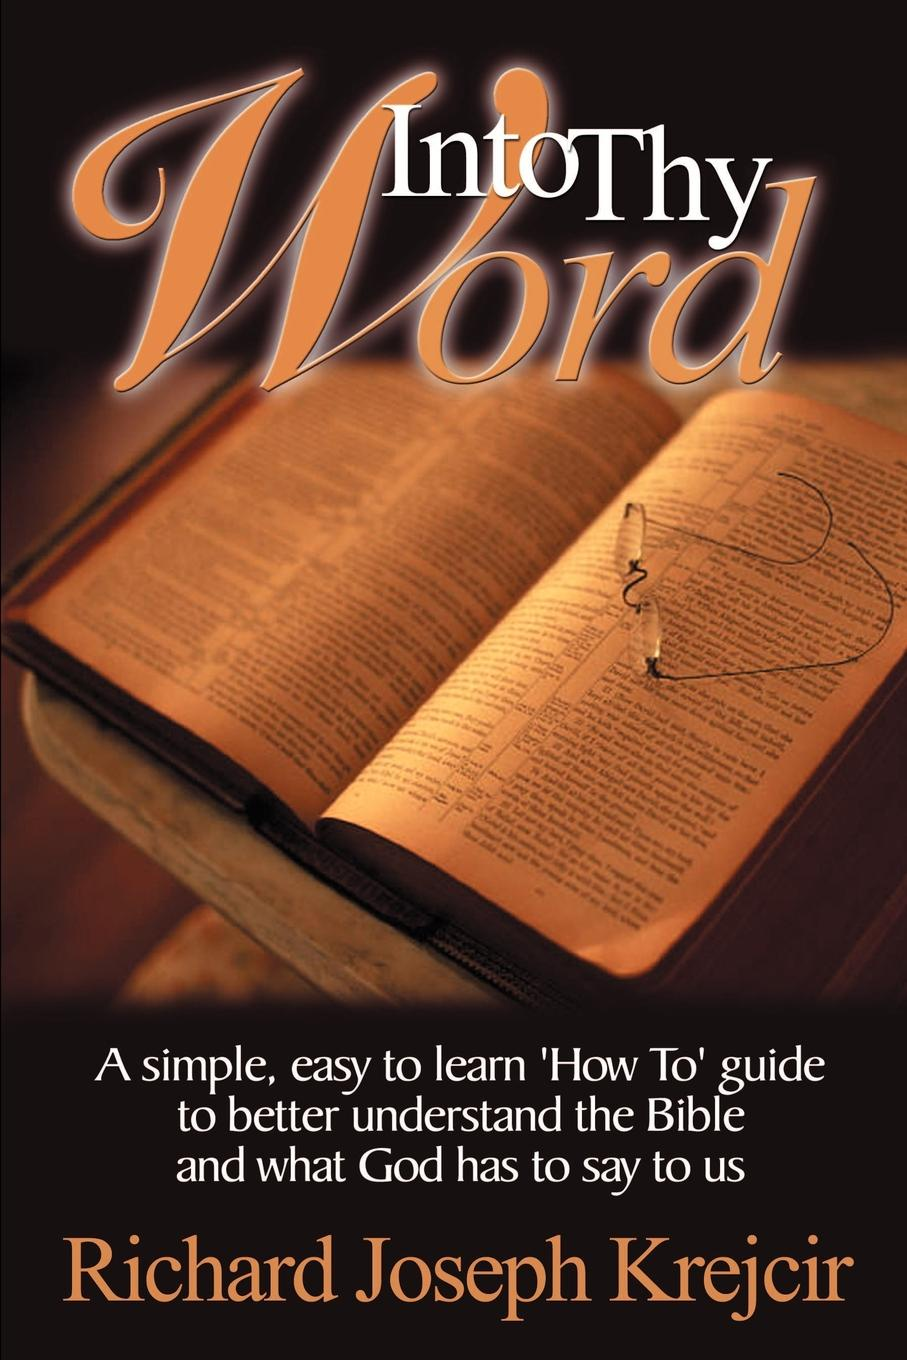 Richard Joseph Krejcir Into Thy Word. A Simple, Easy to Learn How To Guide to Better Understand the Bible and What God Has to Say to Us. 12n50m2 to 220f